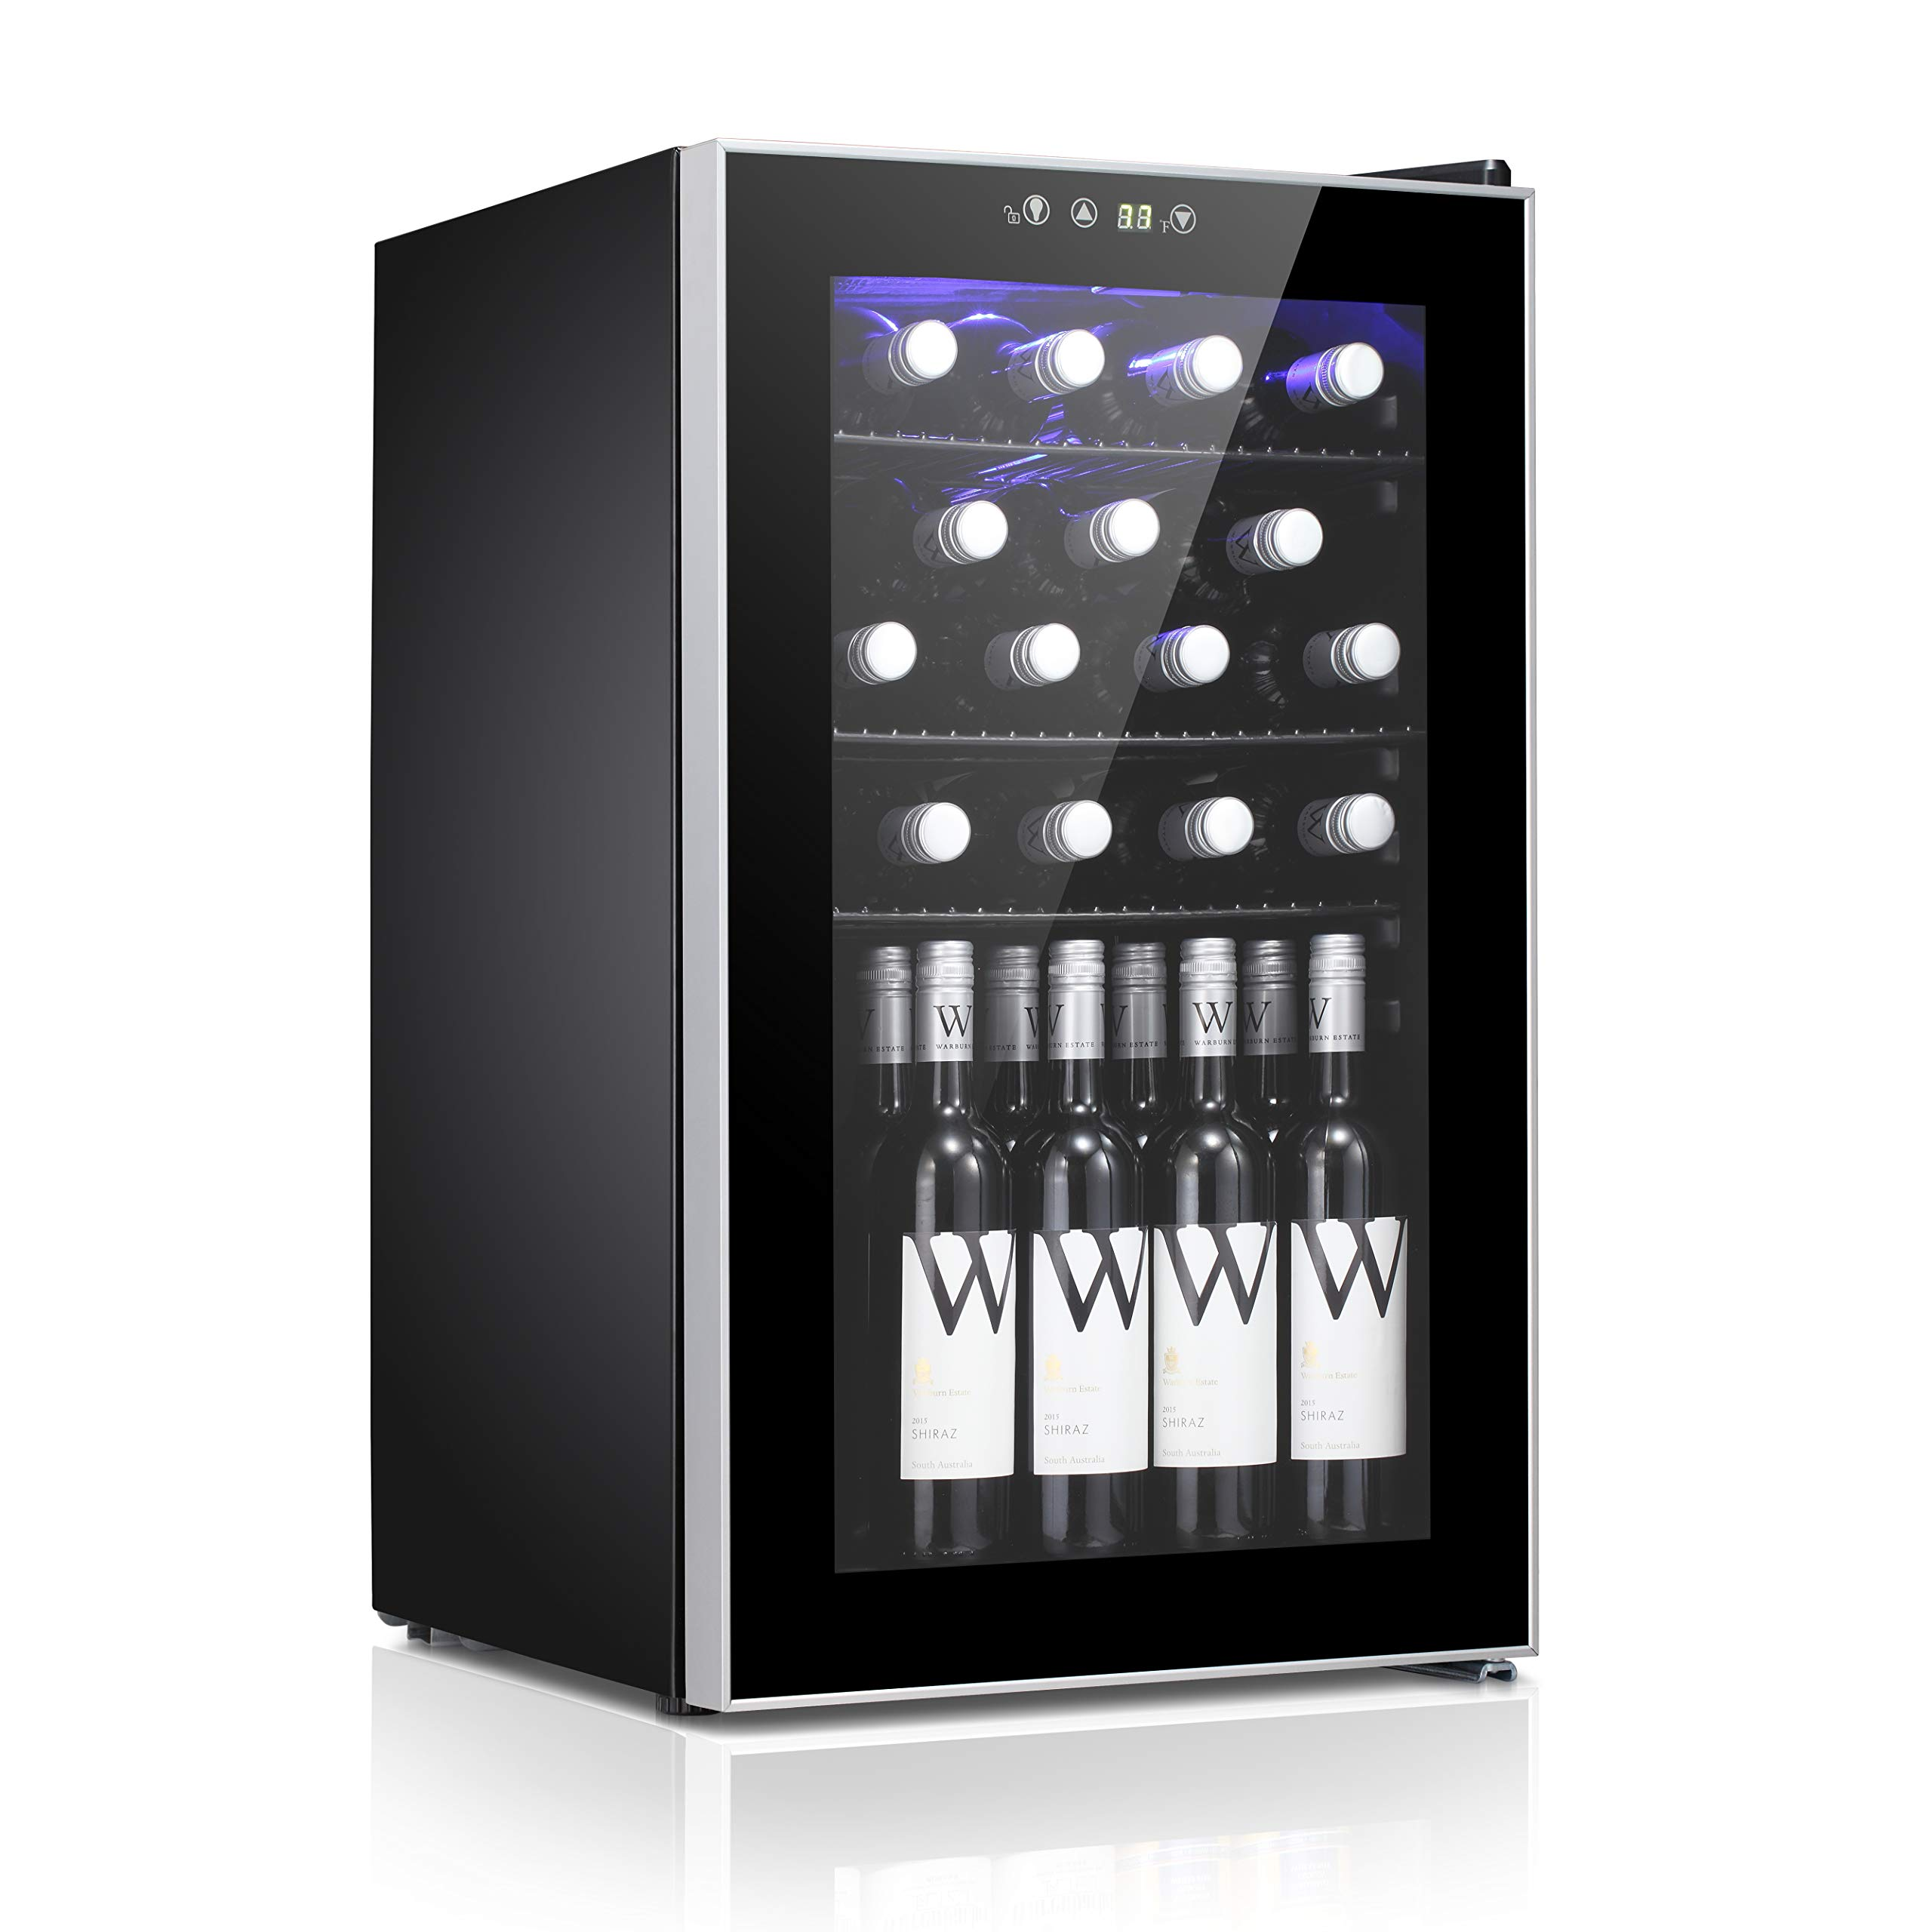 24 Bottle Wine Cooler - Compressor Wine Cellar - Counter Top Wine Chiller- Cabinet Refigerator with Glass Door and Touch Panel Digital Temperature Display